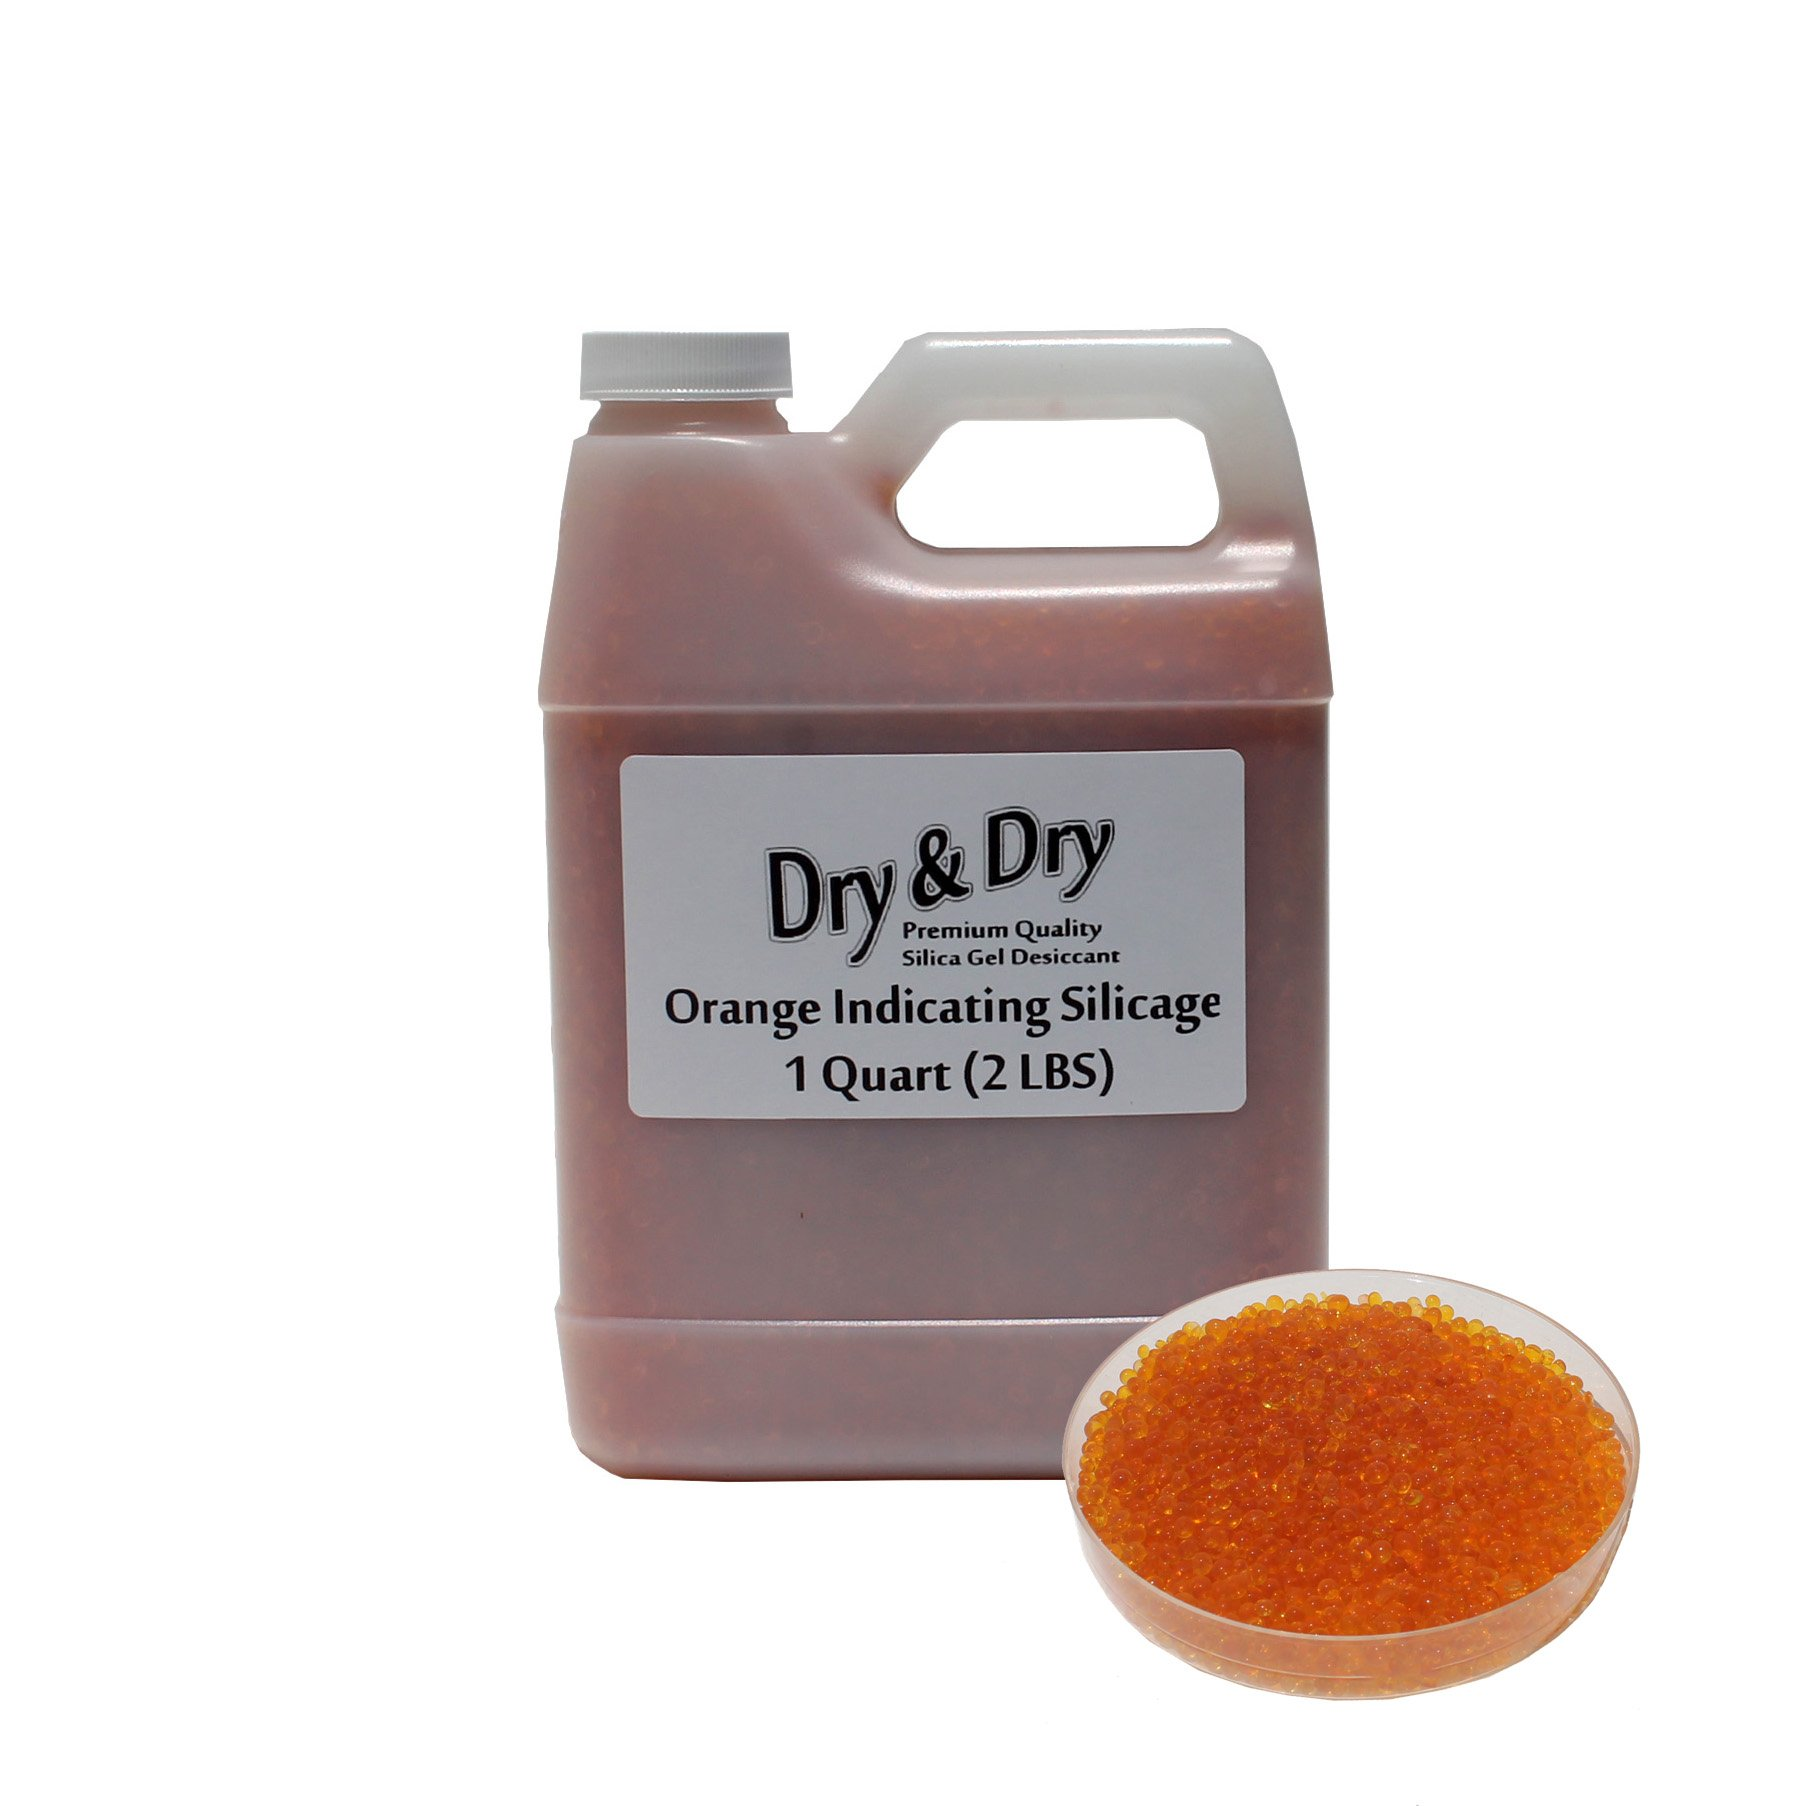 ''Dry & Dry'' [1 Quart] Premium Orange Indicating Silica Gel Desiccant Beads(Industry Standard 2-4 mm) - Rechargeable(2 LBS)